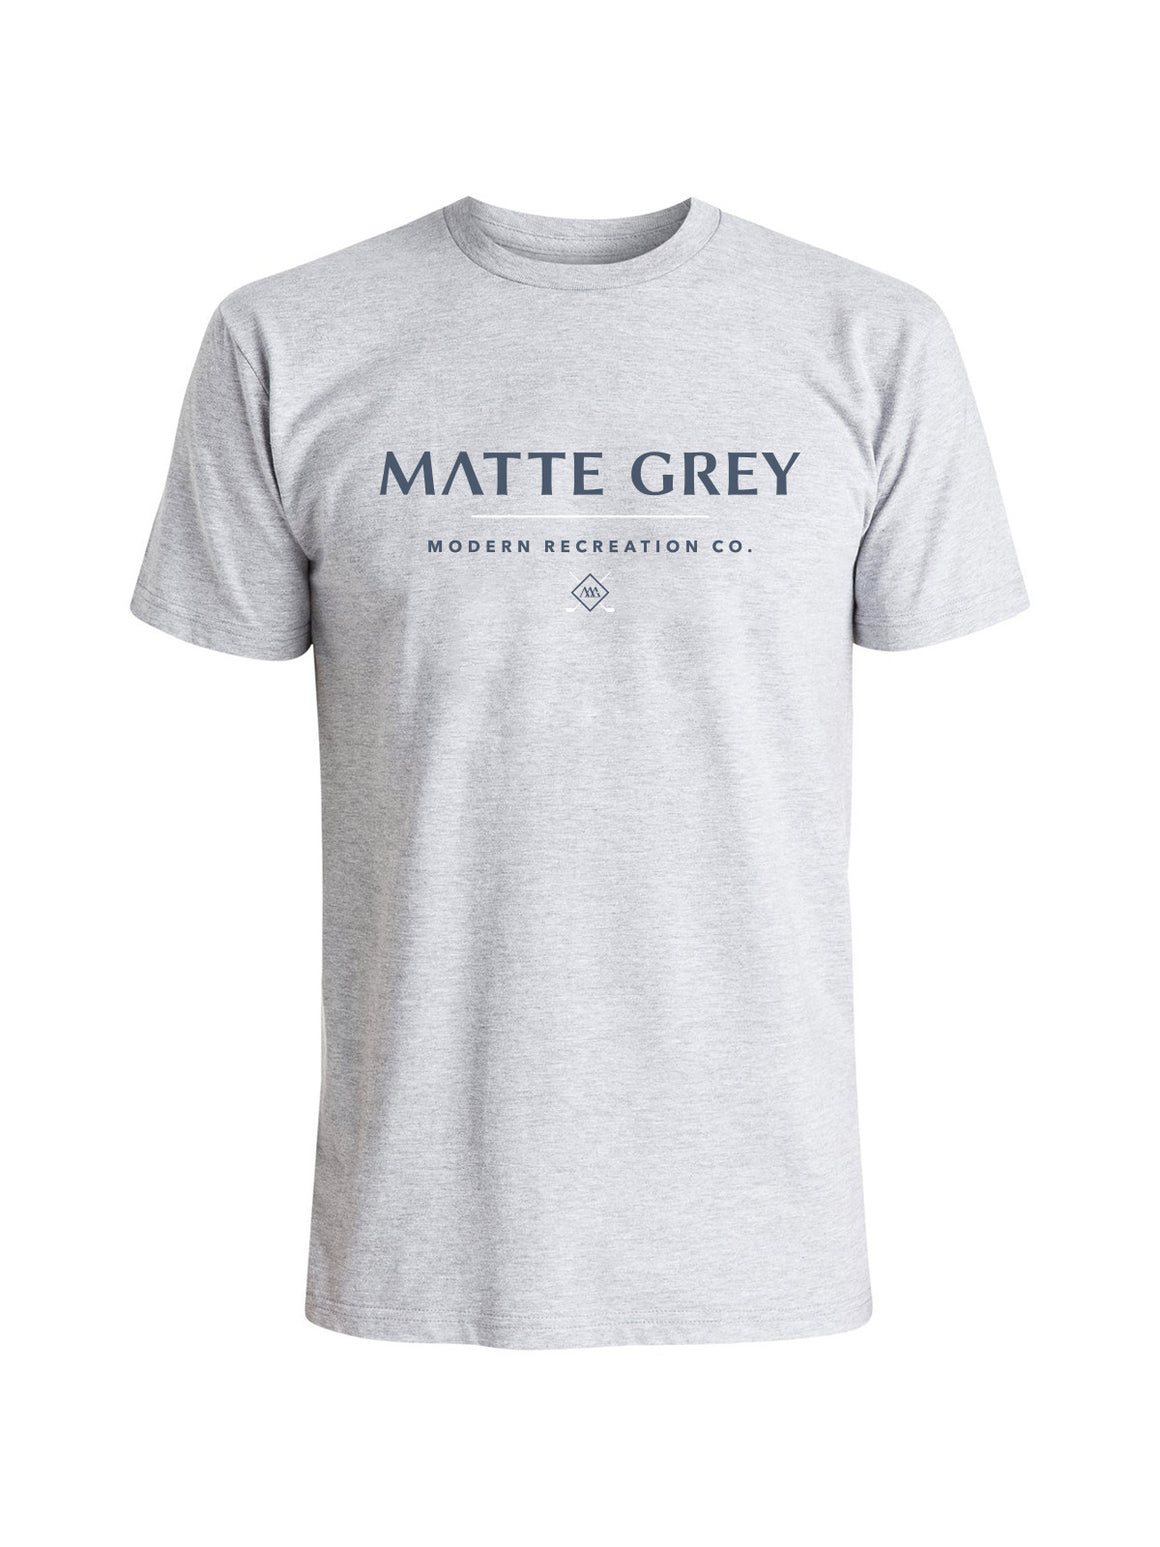 MDRN T-Shirt - Gainsburo Heather (Navy /White)